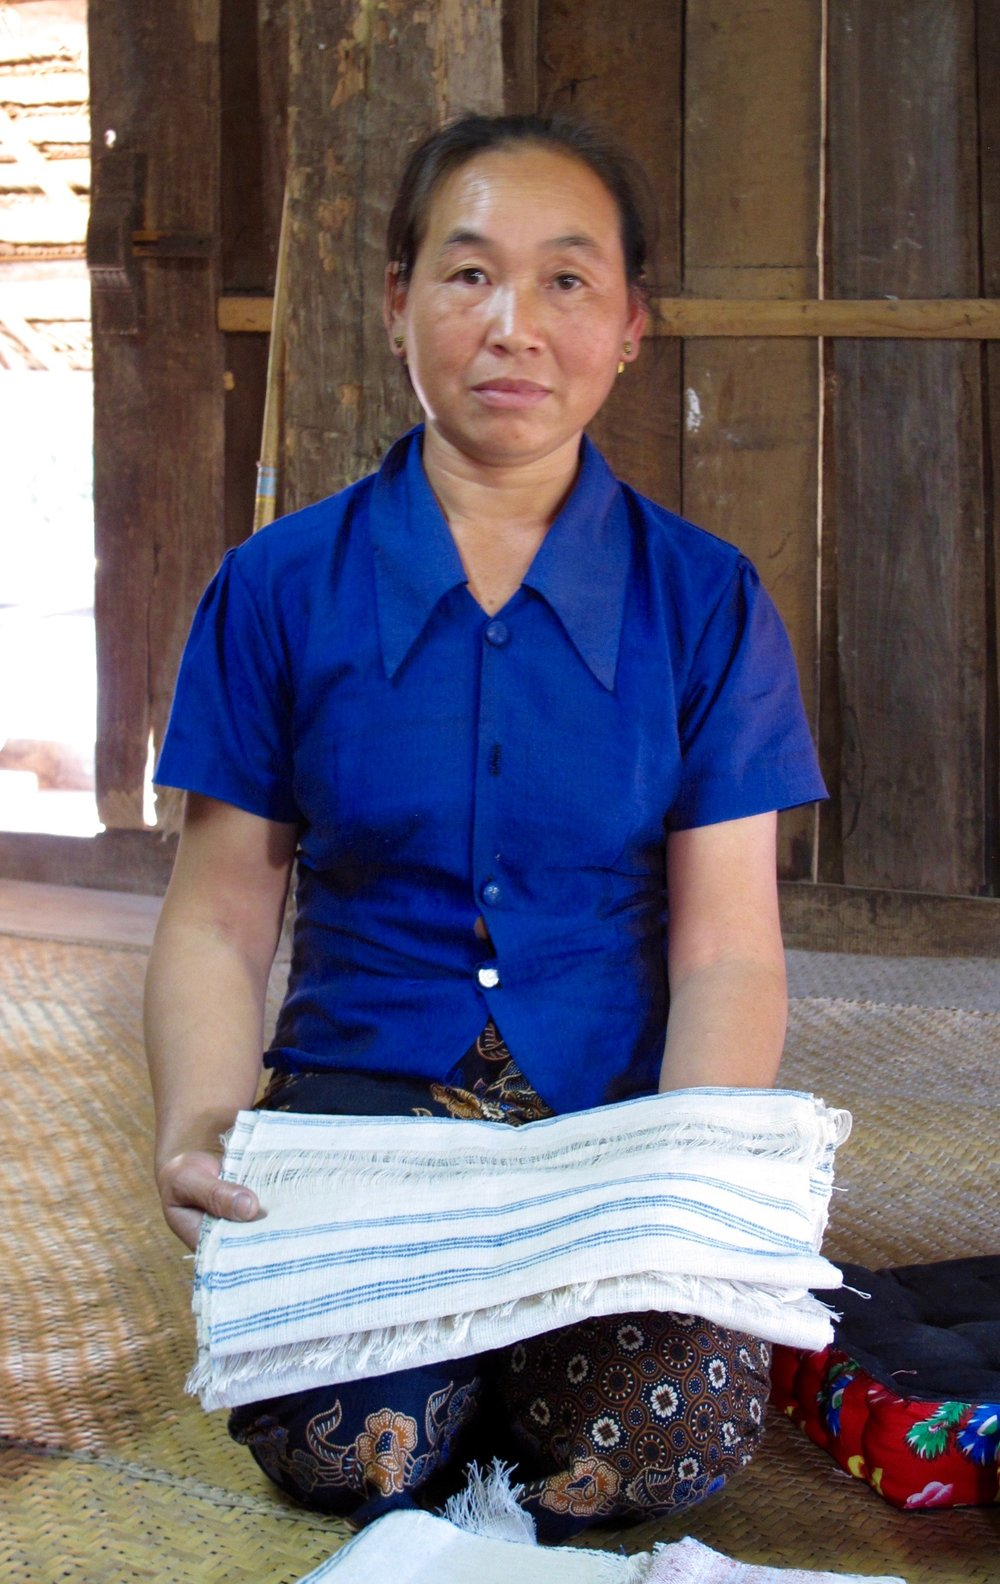 Panya with her delicately handwoven napkins